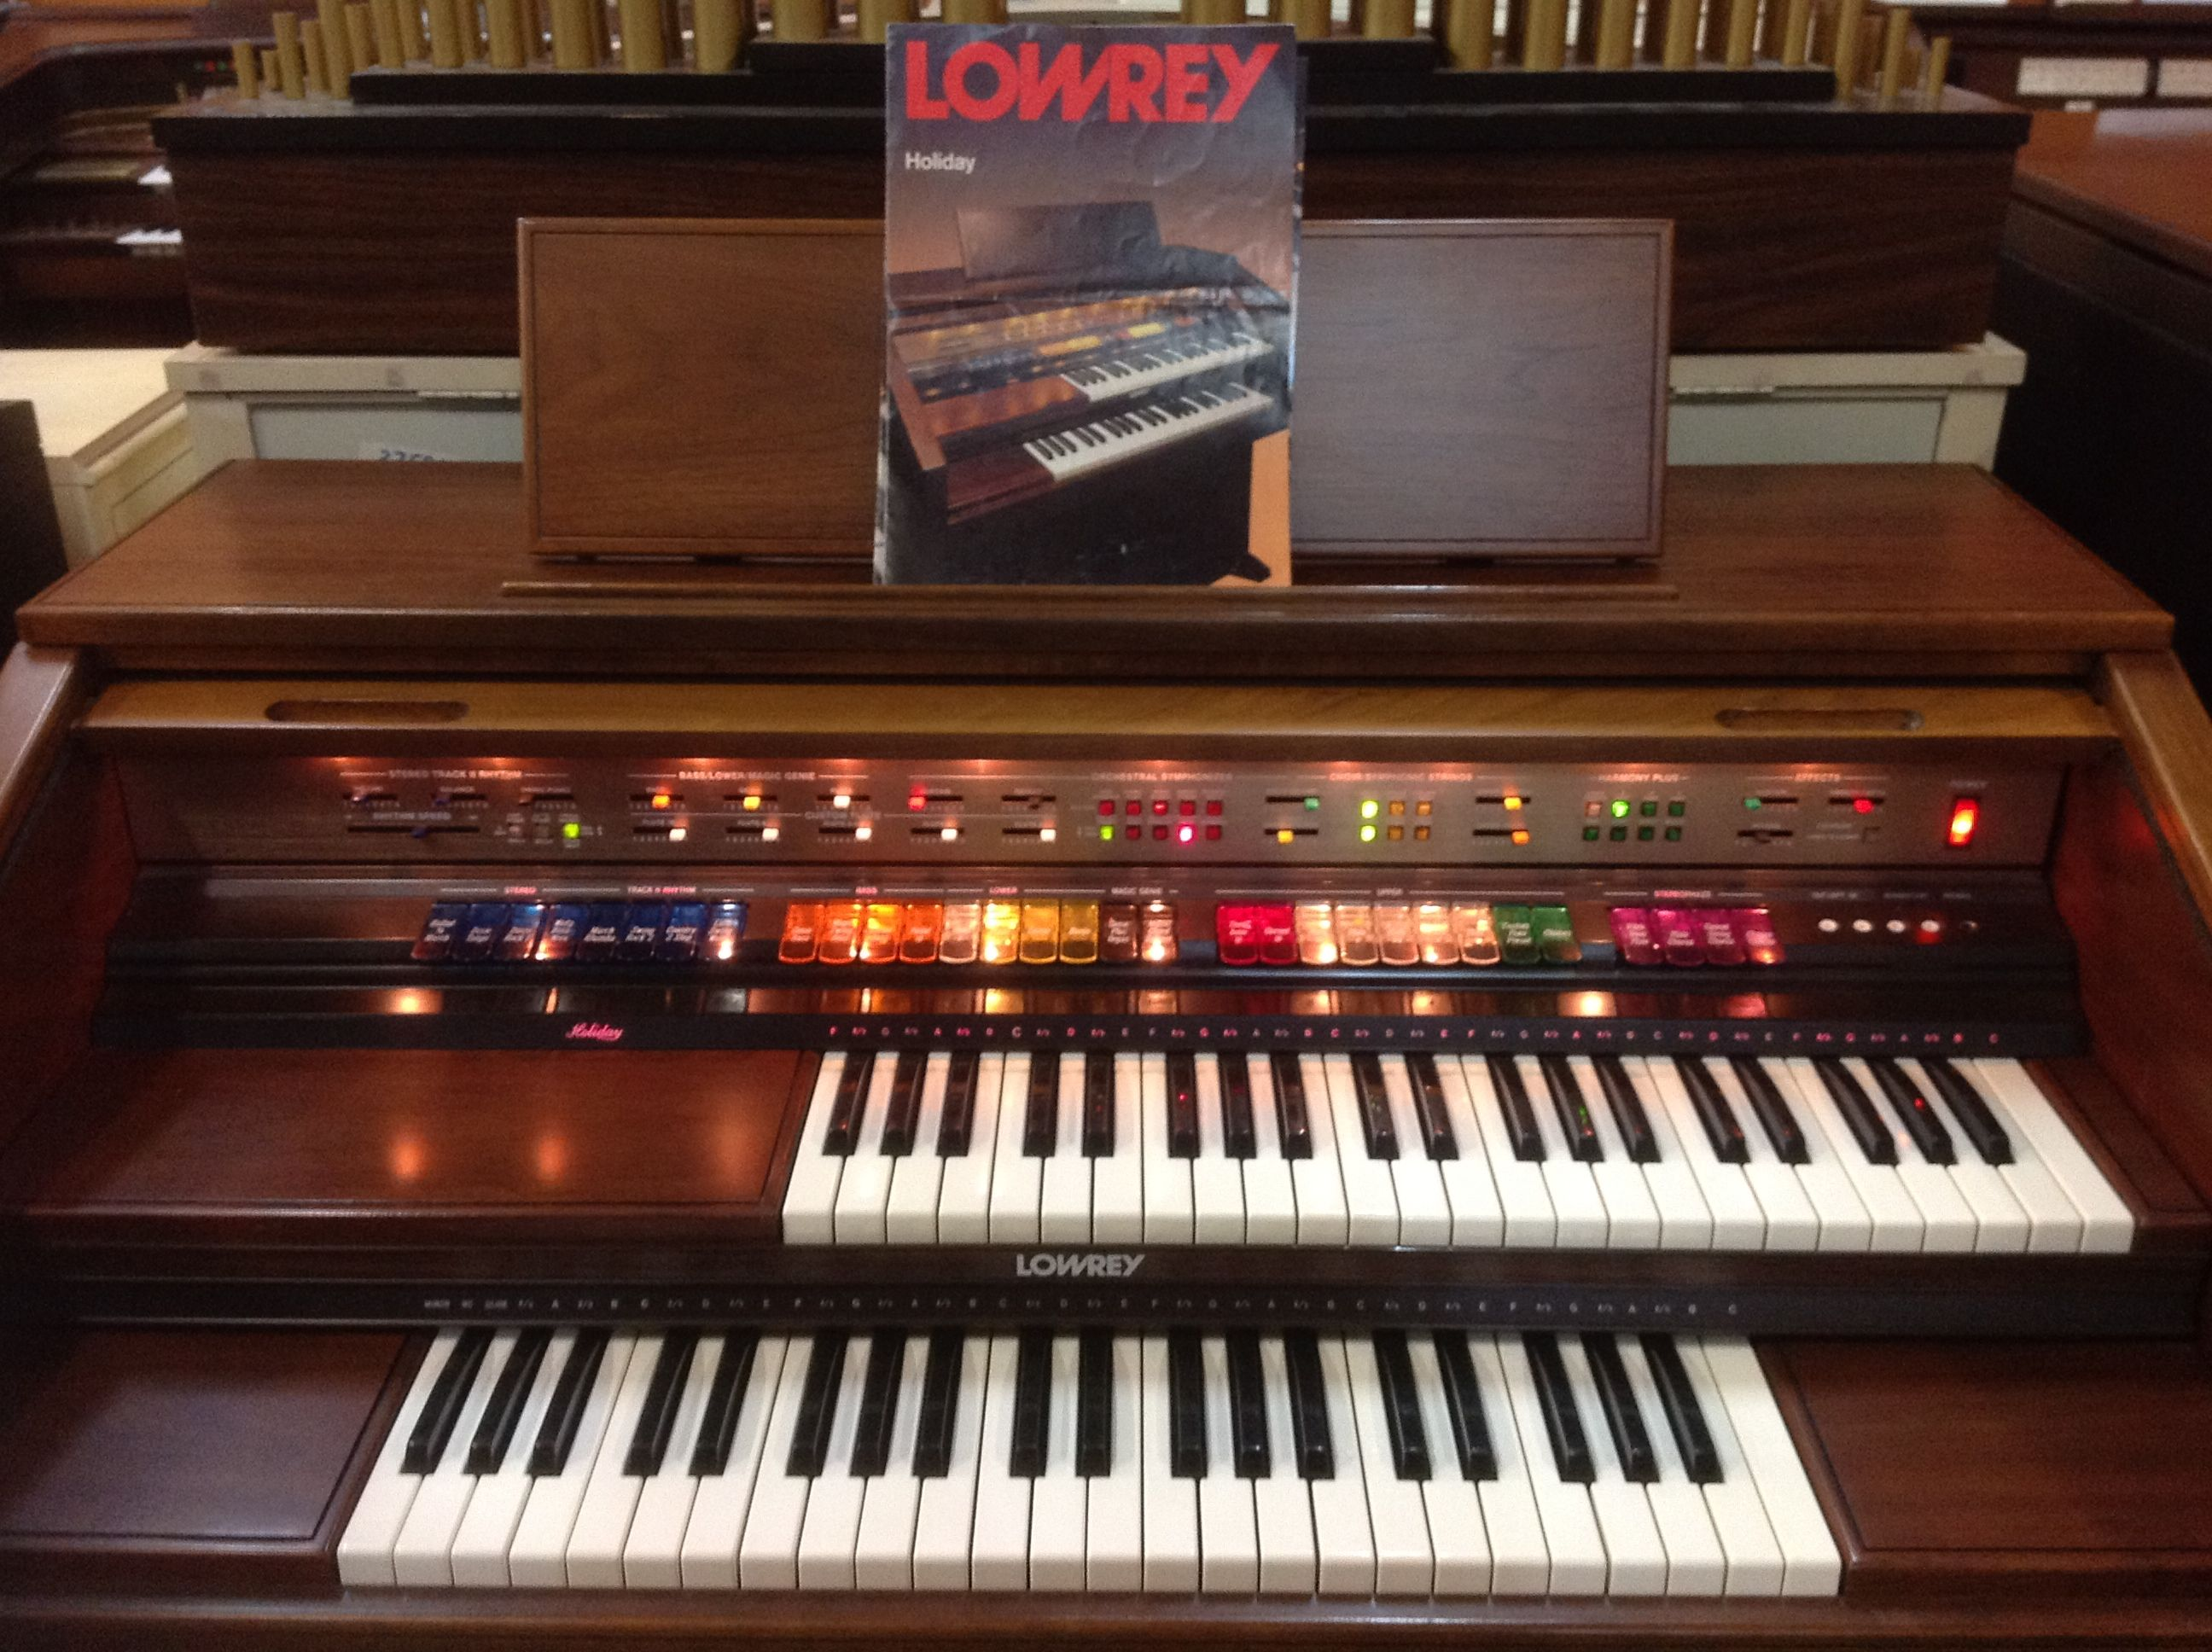 Lowrey holiday d350 organ this model is one of our for Classic house organ sound